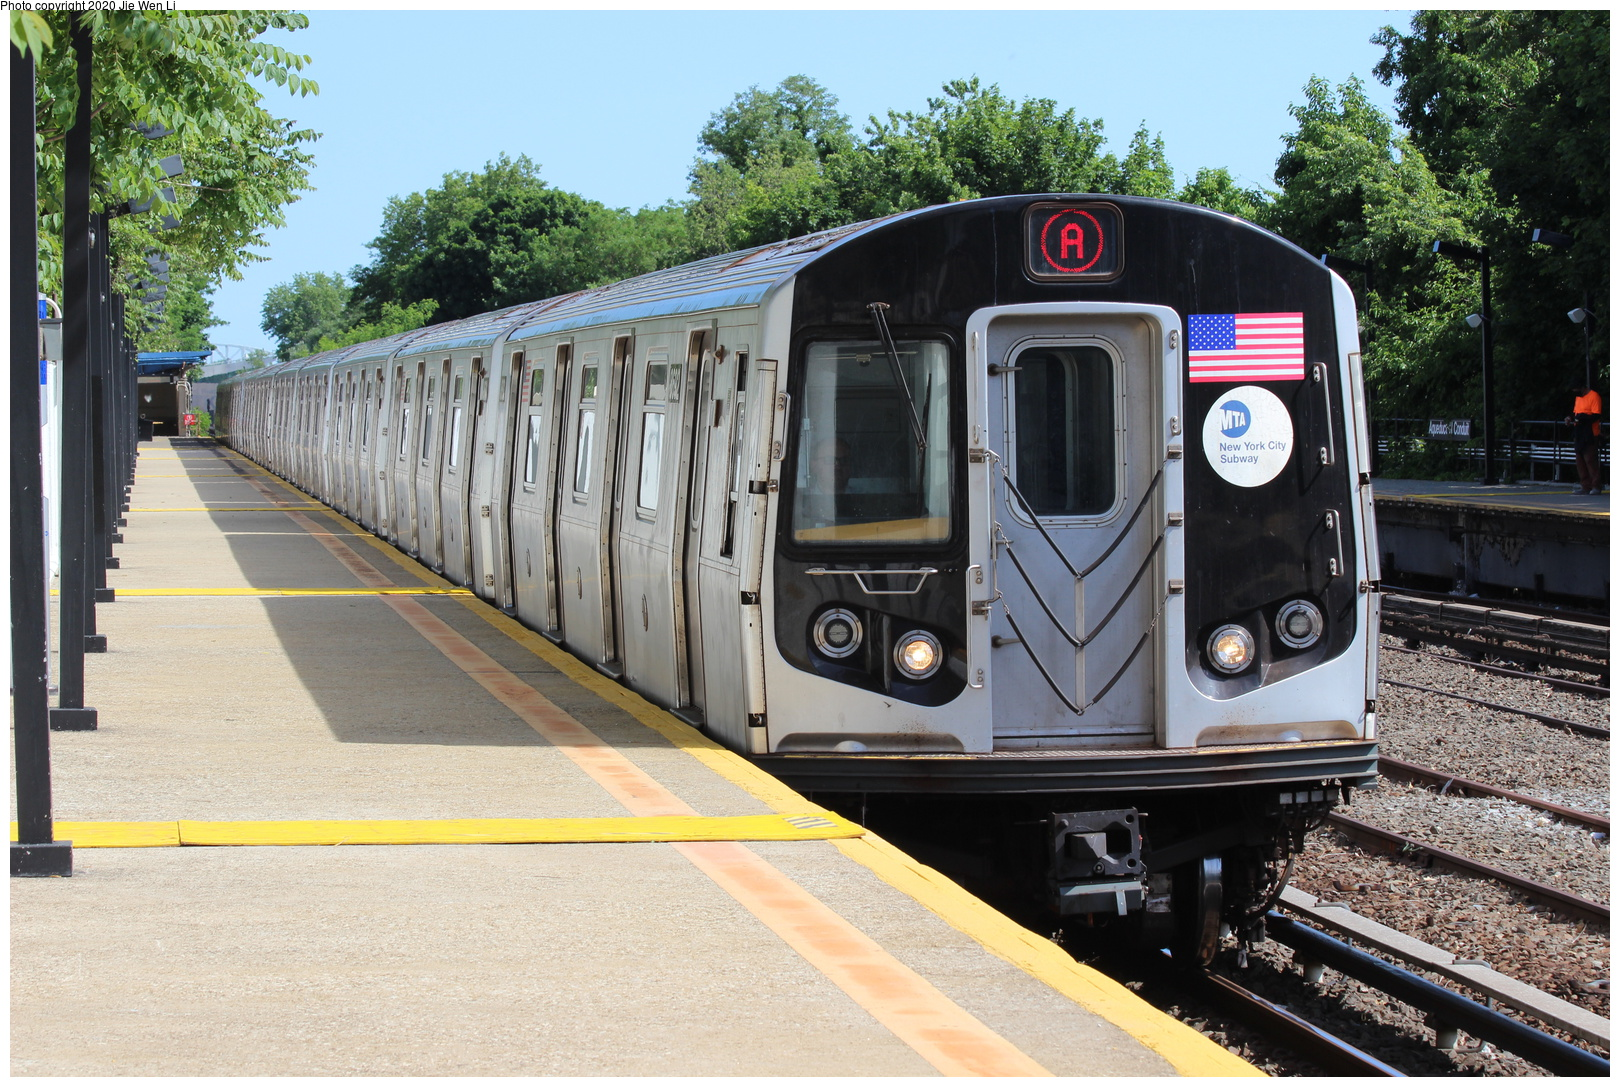 (261k, 1044x1037)<br><b>Country:</b> United States<br><b>City:</b> New York<br><b>System:</b> New York City Transit<br><b>Line:</b> BMT Canarsie Line<br><b>Location:</b> Broadway Junction <br><b>Car:</b> BMT Multi  <br><b>Photo by:</b> Joel Shanus<br><b>Notes:</b> Lefferts (Fulton line) train at Bway Jct.<br><b>Viewed (this week/total):</b> 1 / 951